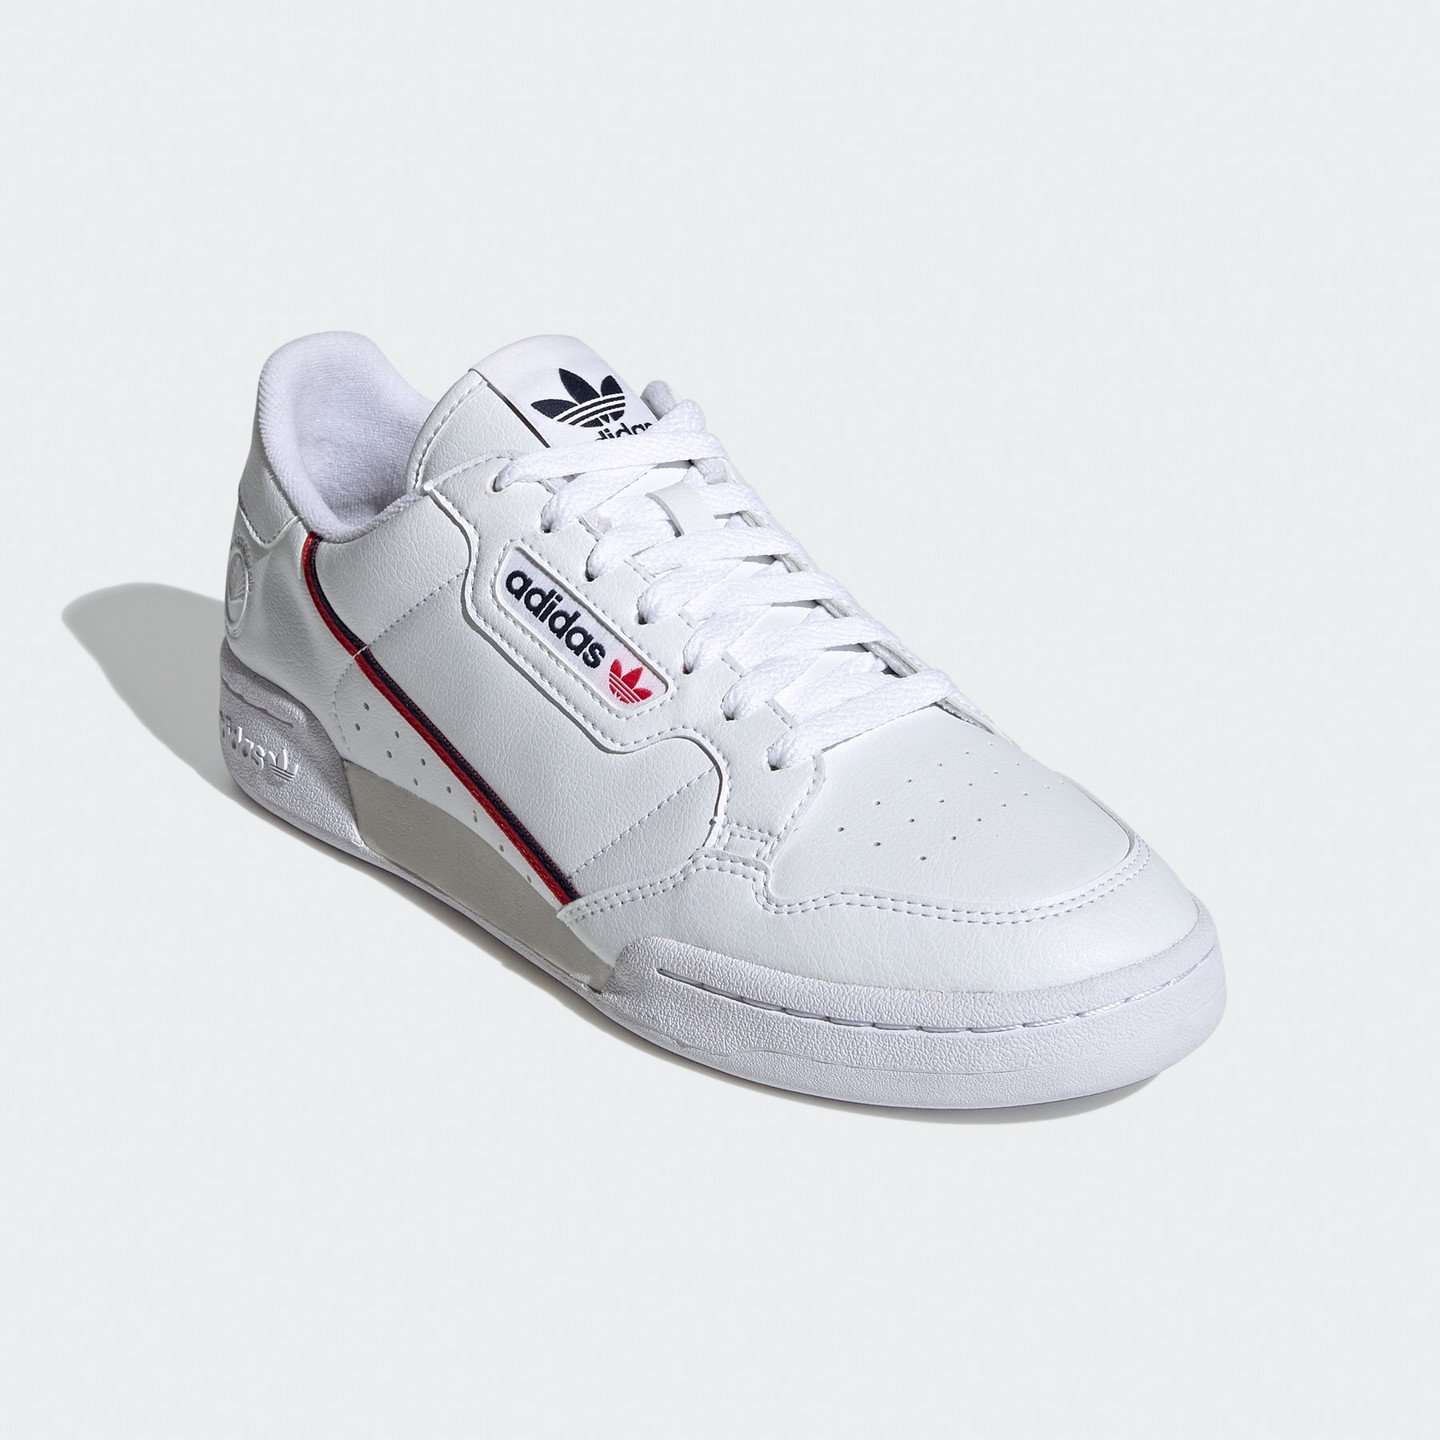 Adidas Continental 80 Vegan OG Cloud White / Collegiate Navy / Scarlet FW2336